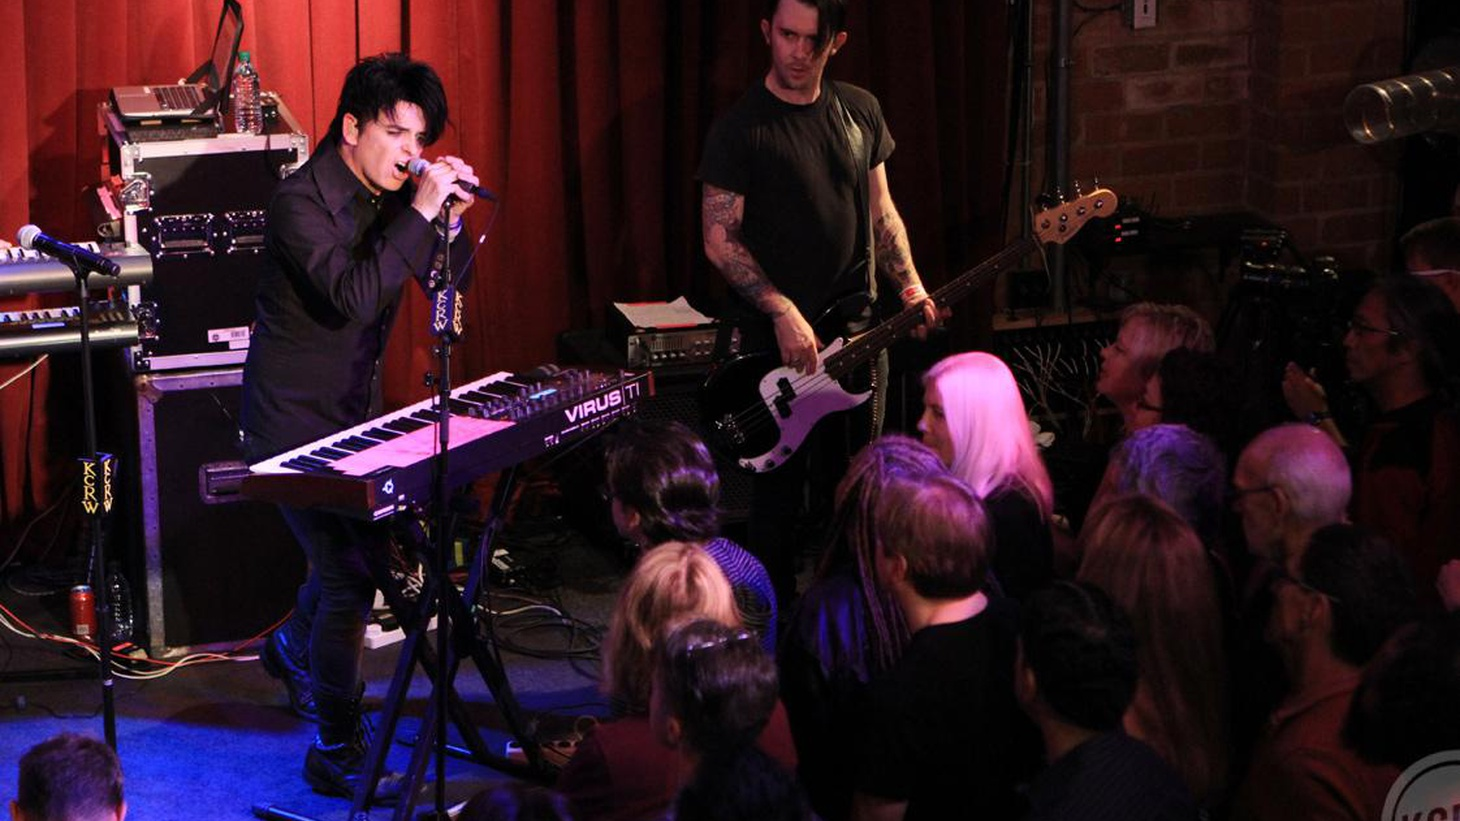 Gary Numan is one of the pioneers of modern electronic music. We recorded a special session at Apogee Studio around his album Splinter (Songs from a Broken Mind).